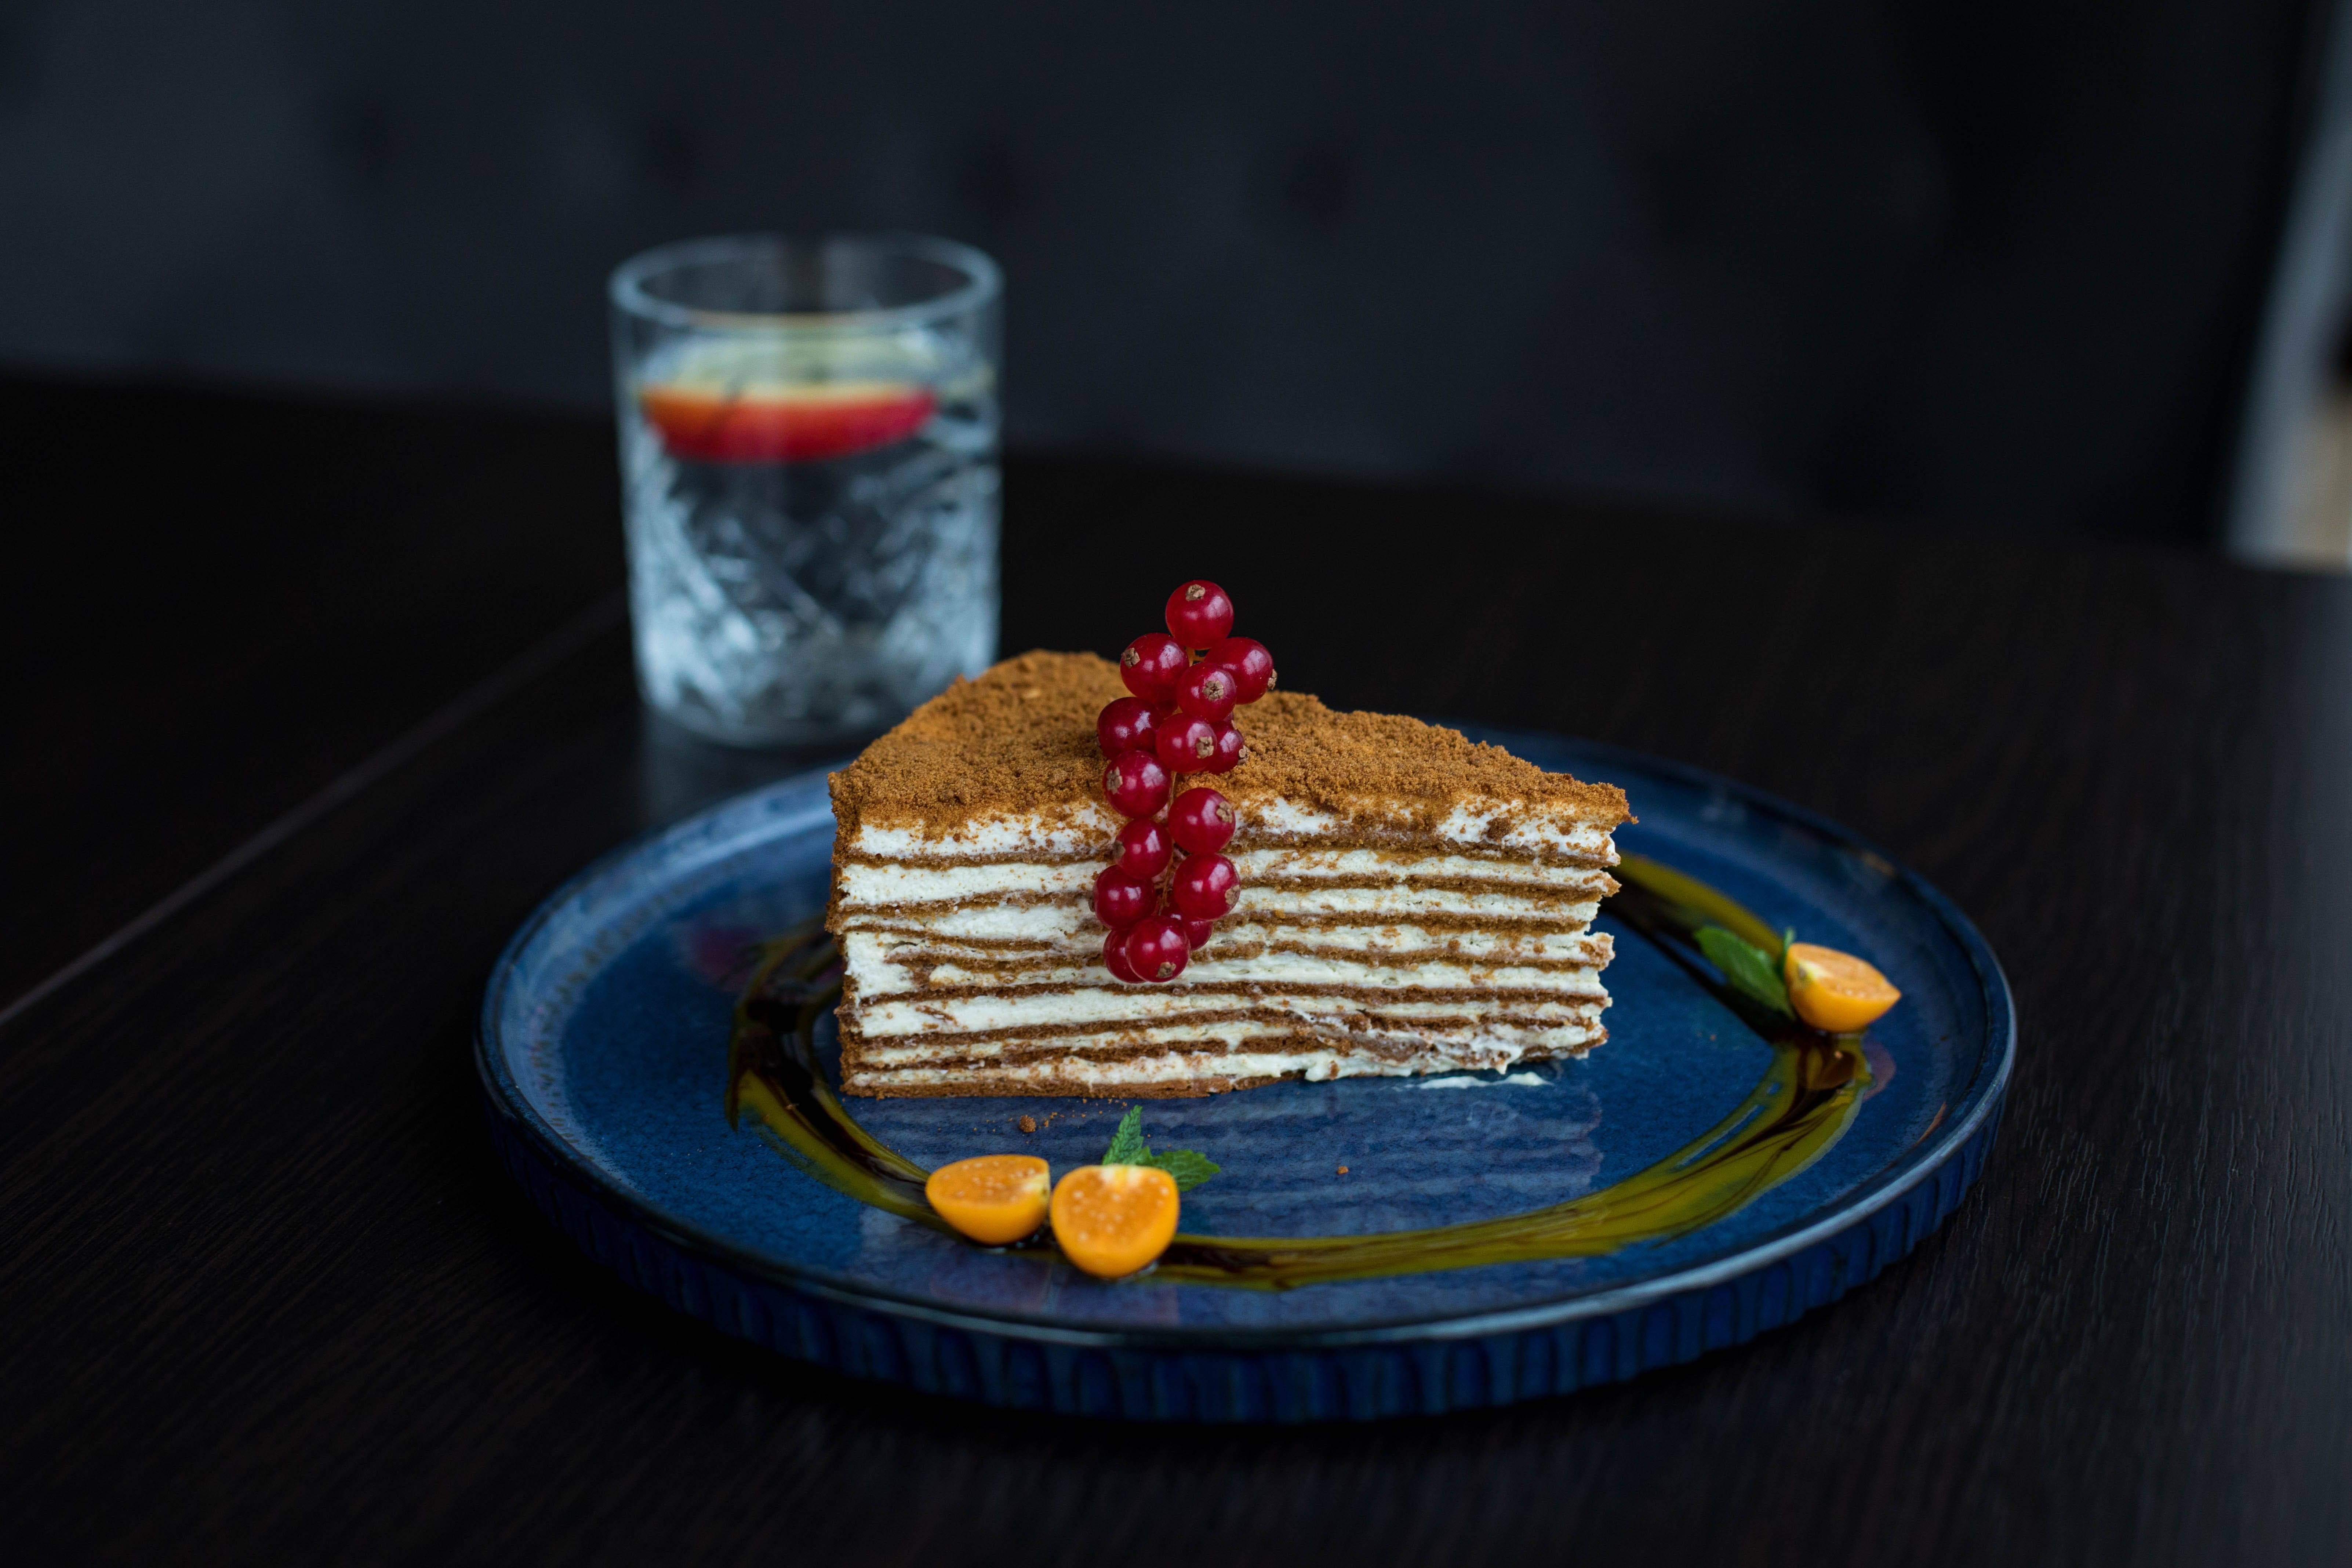 Plate Of Sliced Cake With Berries On Top